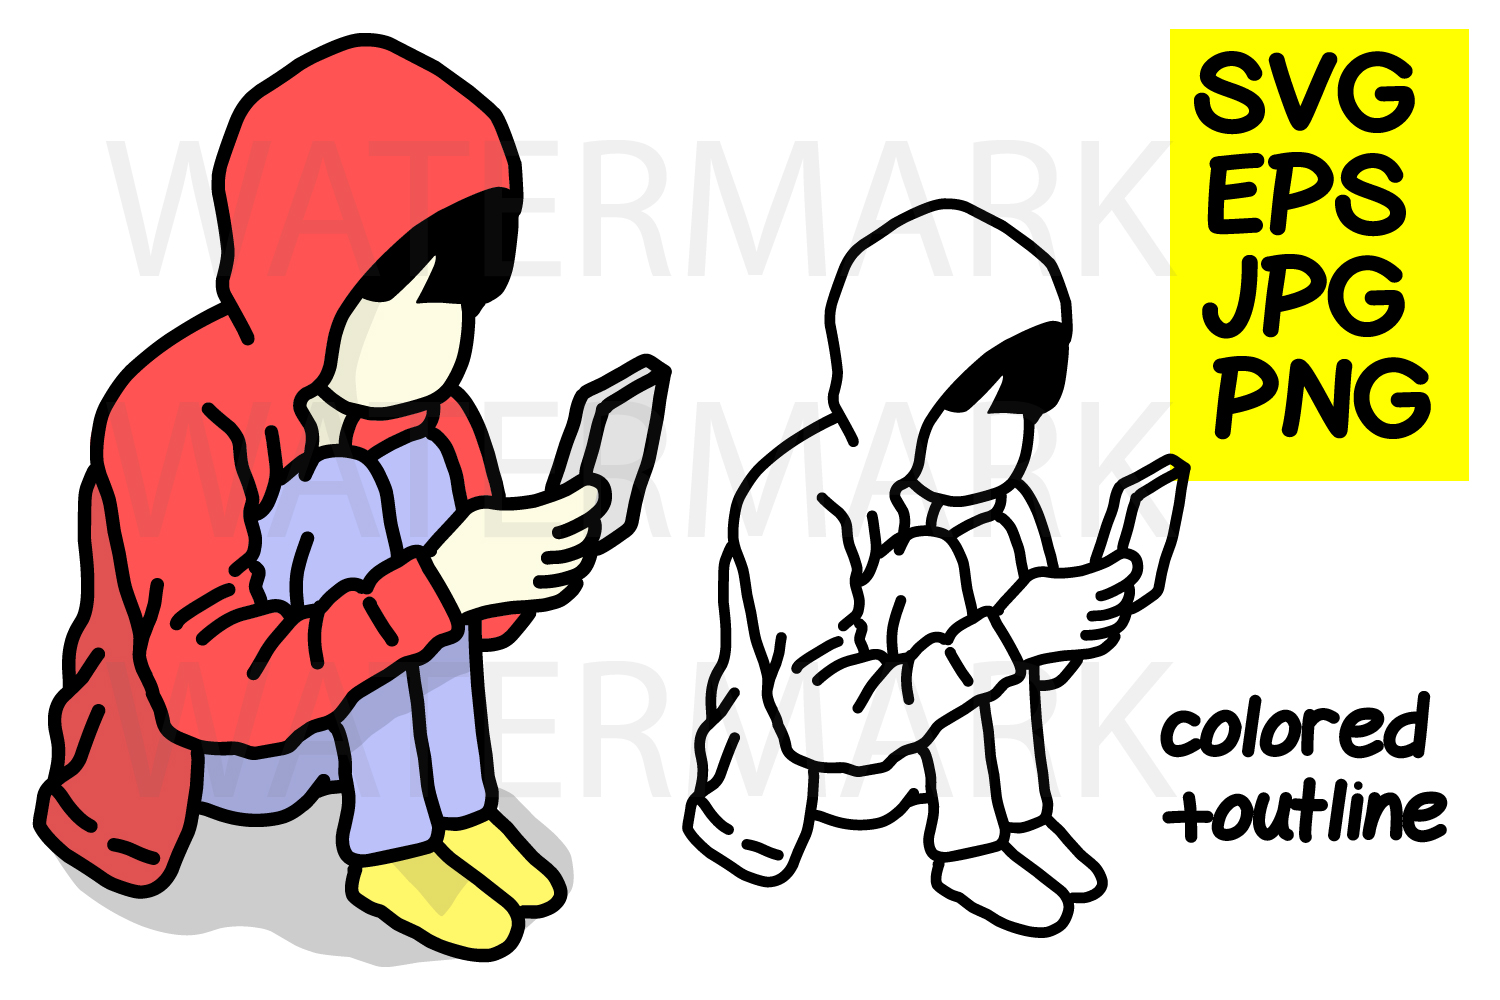 Hoodie Boy and smartphone-color and outline- SVG-EPS-JPG-PN example image 1